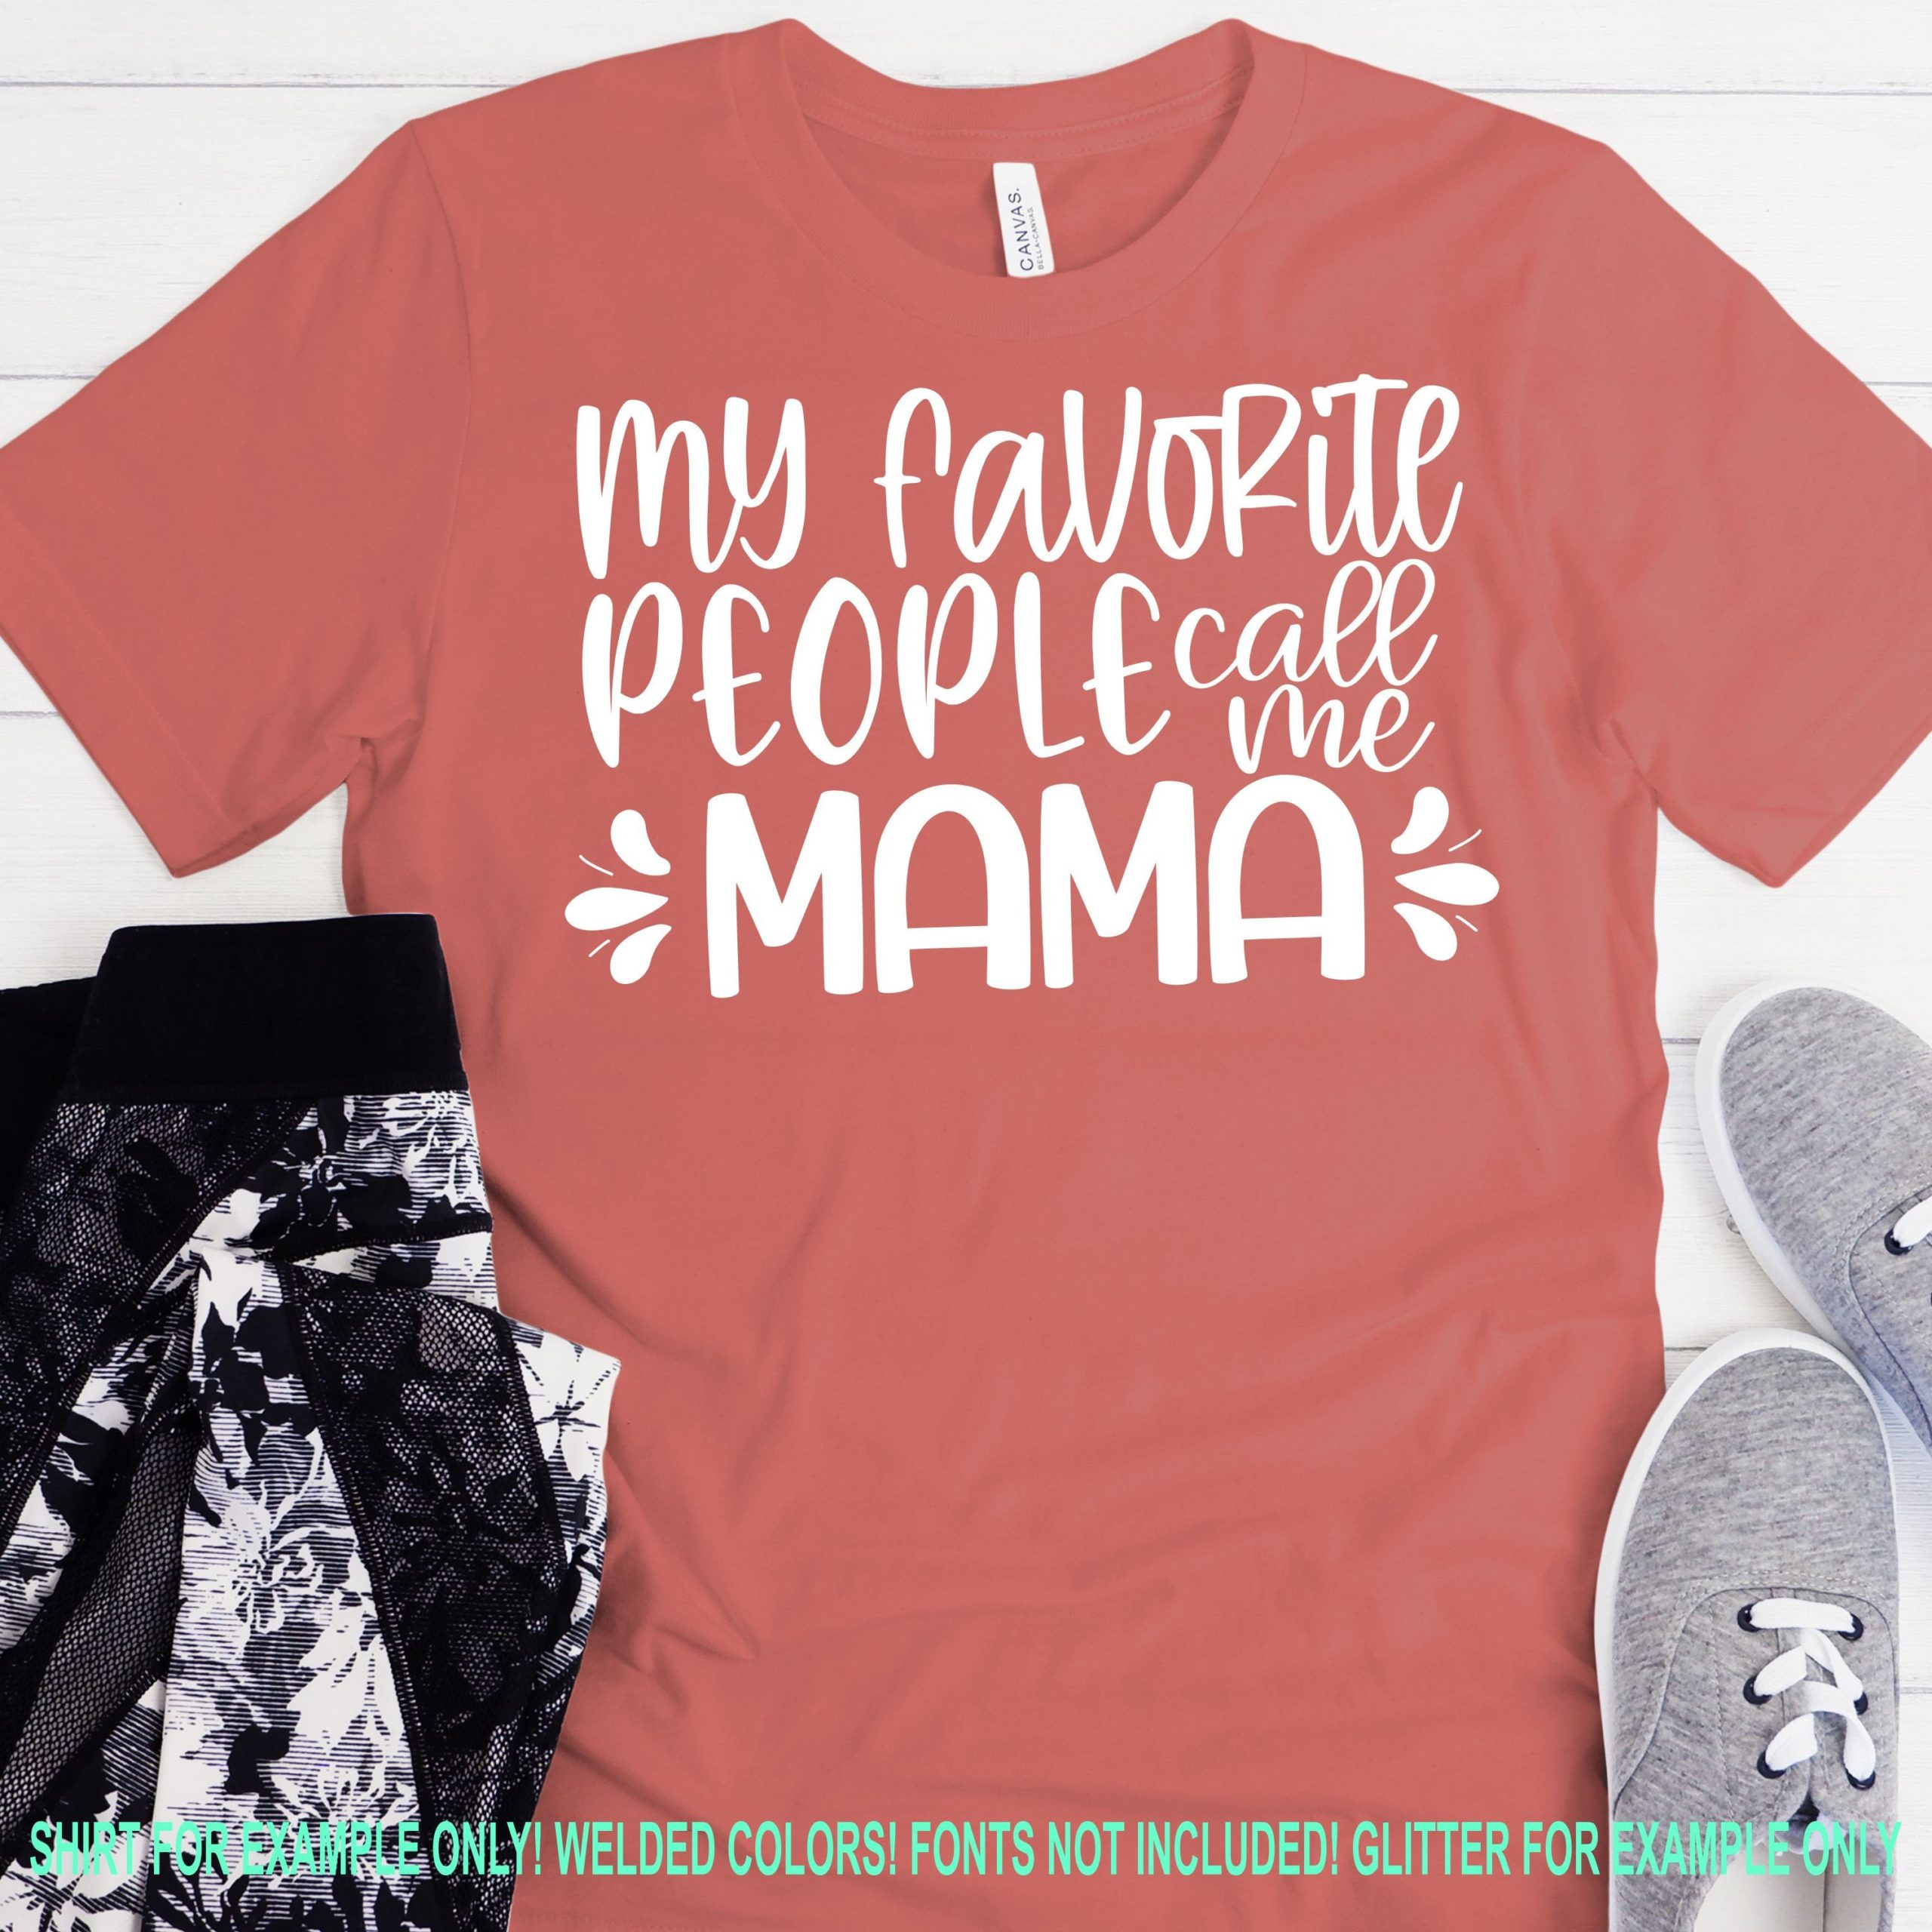 My-favorite-people-call-me-mama-svg-mothers-day-svg-happy-mothers-day-mama-svg-cuttable-svg-designs-cuttable-cut-file-cricut-svg-60512d42